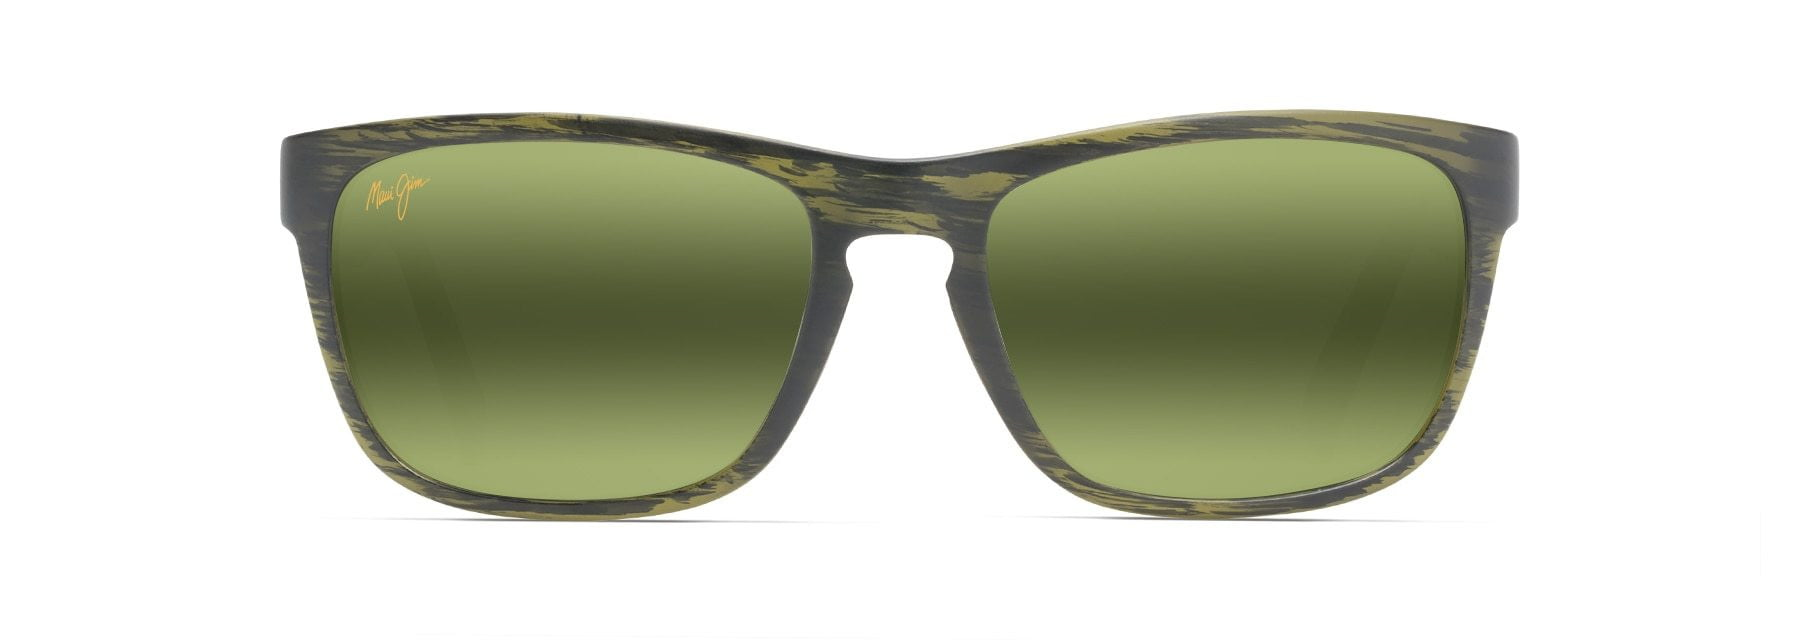 MyMaui South Swell MM755-012 Sunglasses